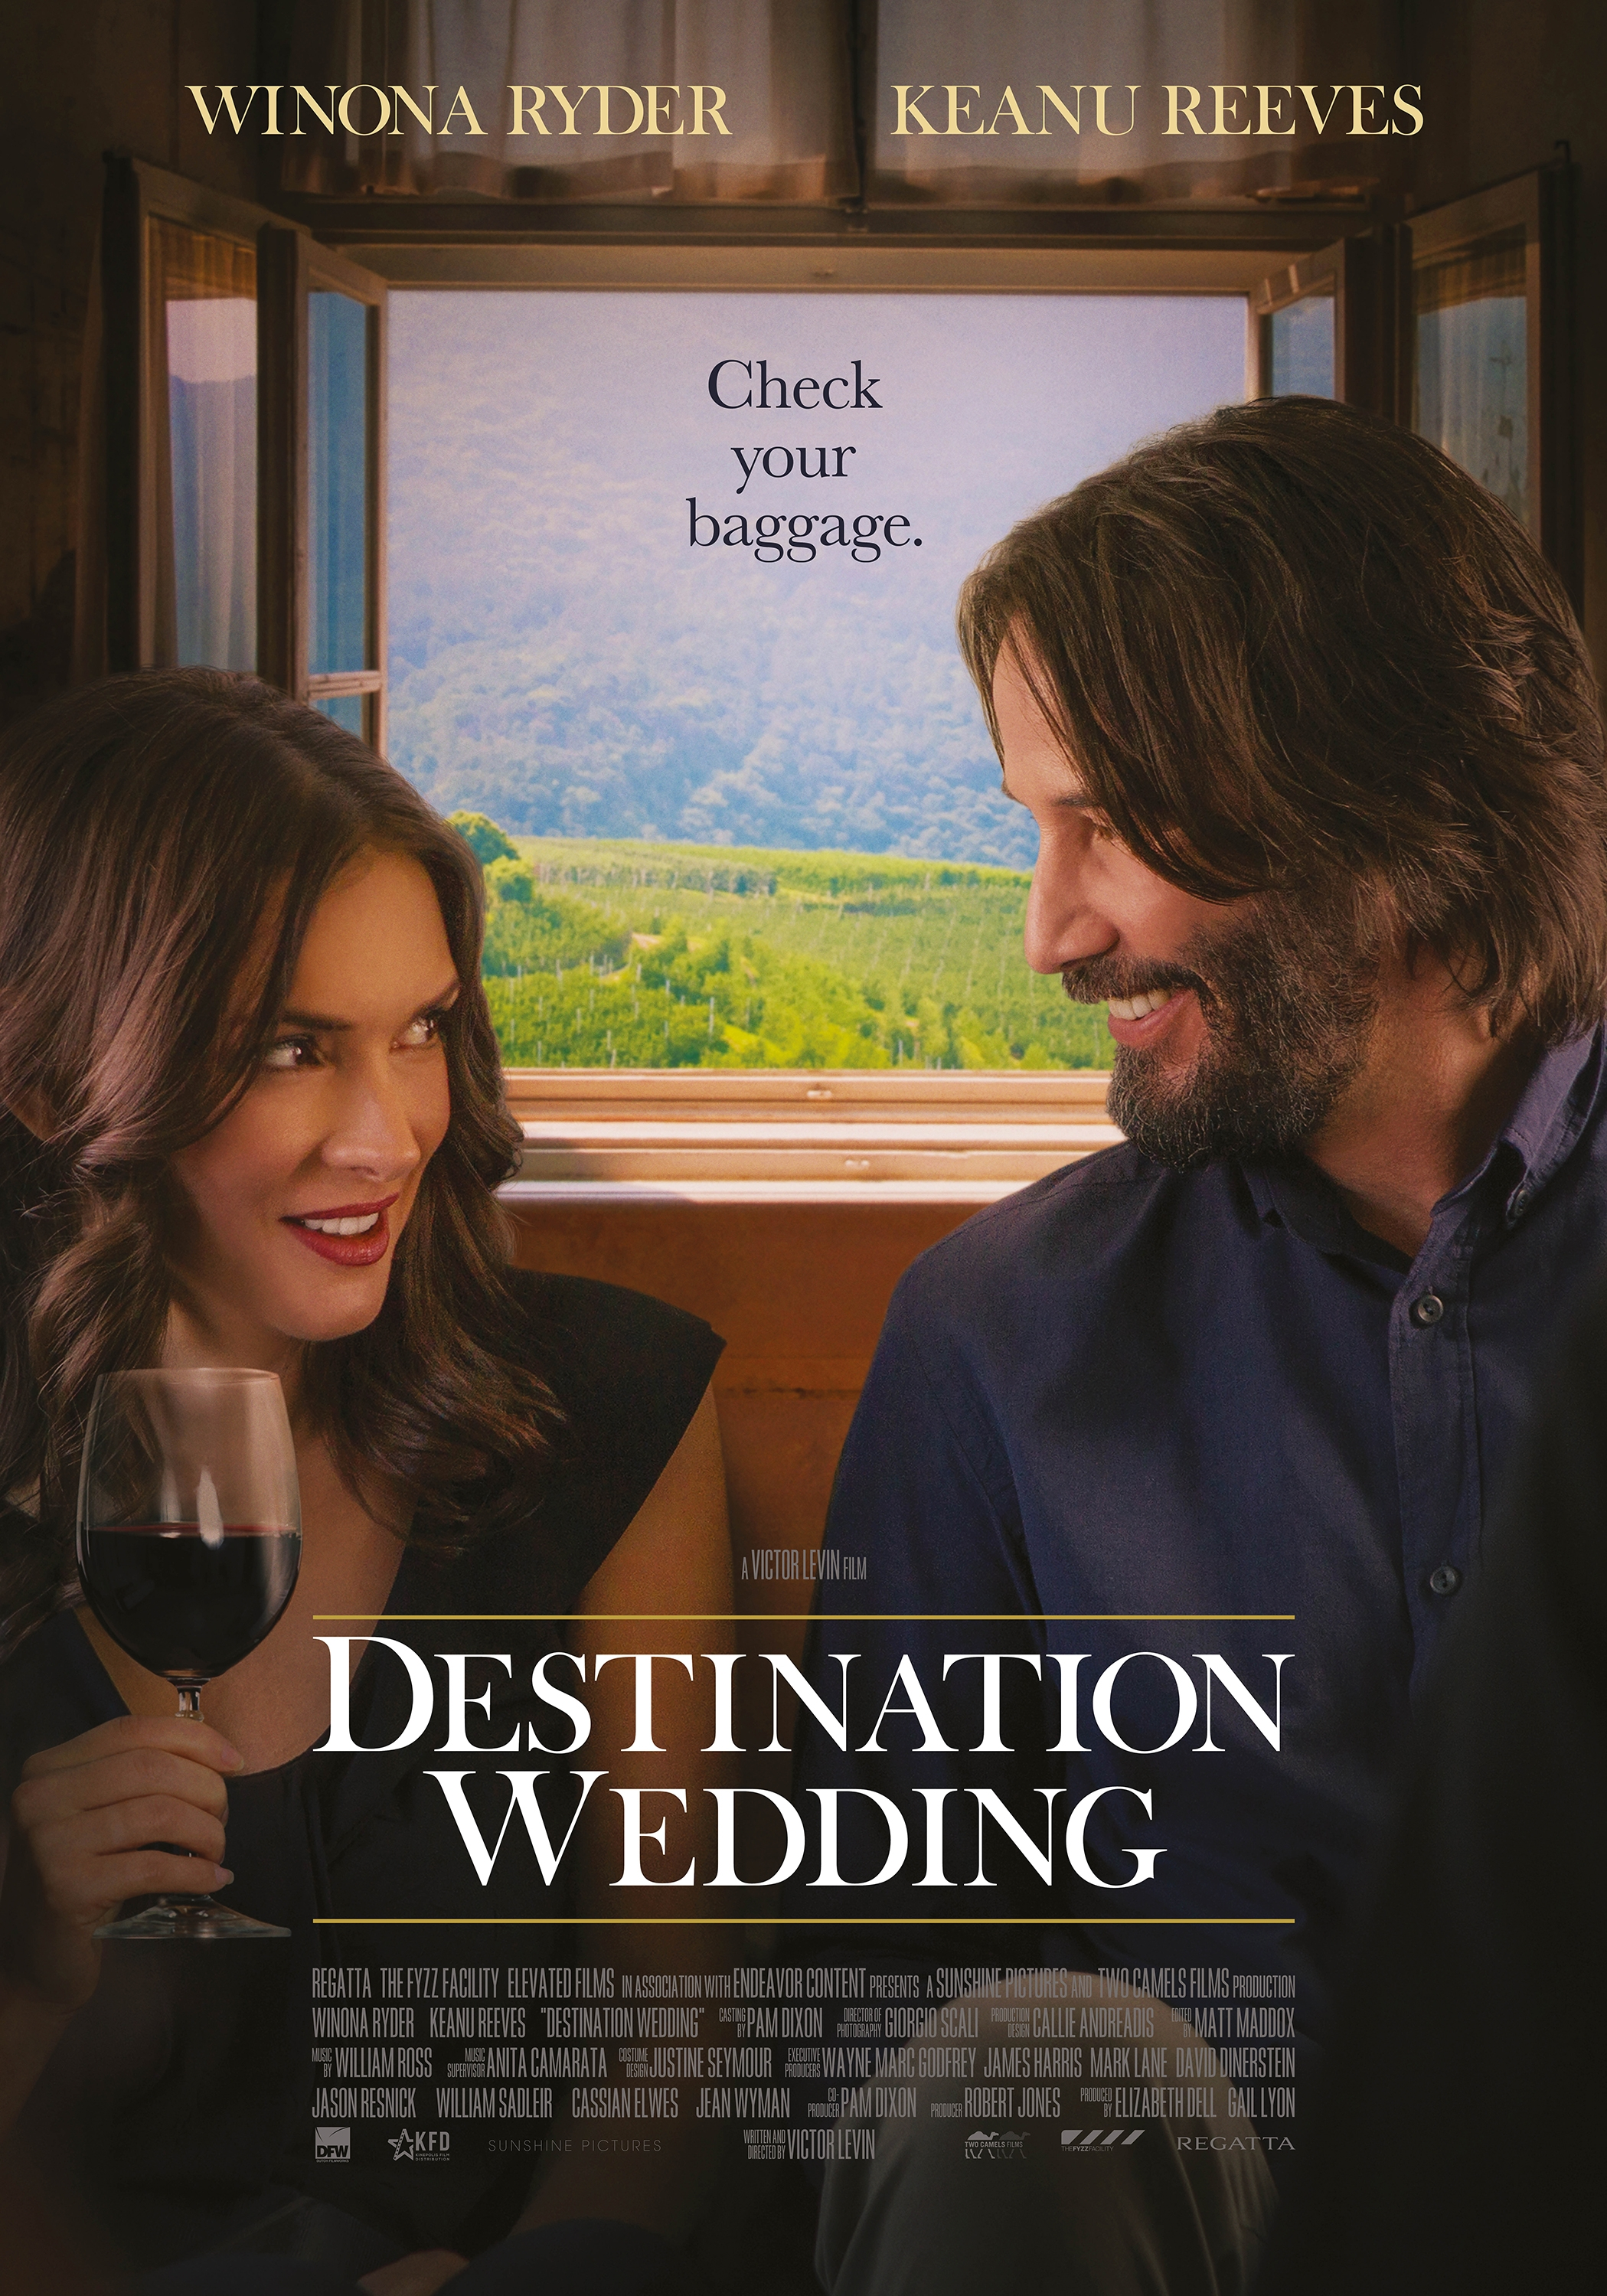 Destination Wedding poster, © 2018 Dutch FilmWorks